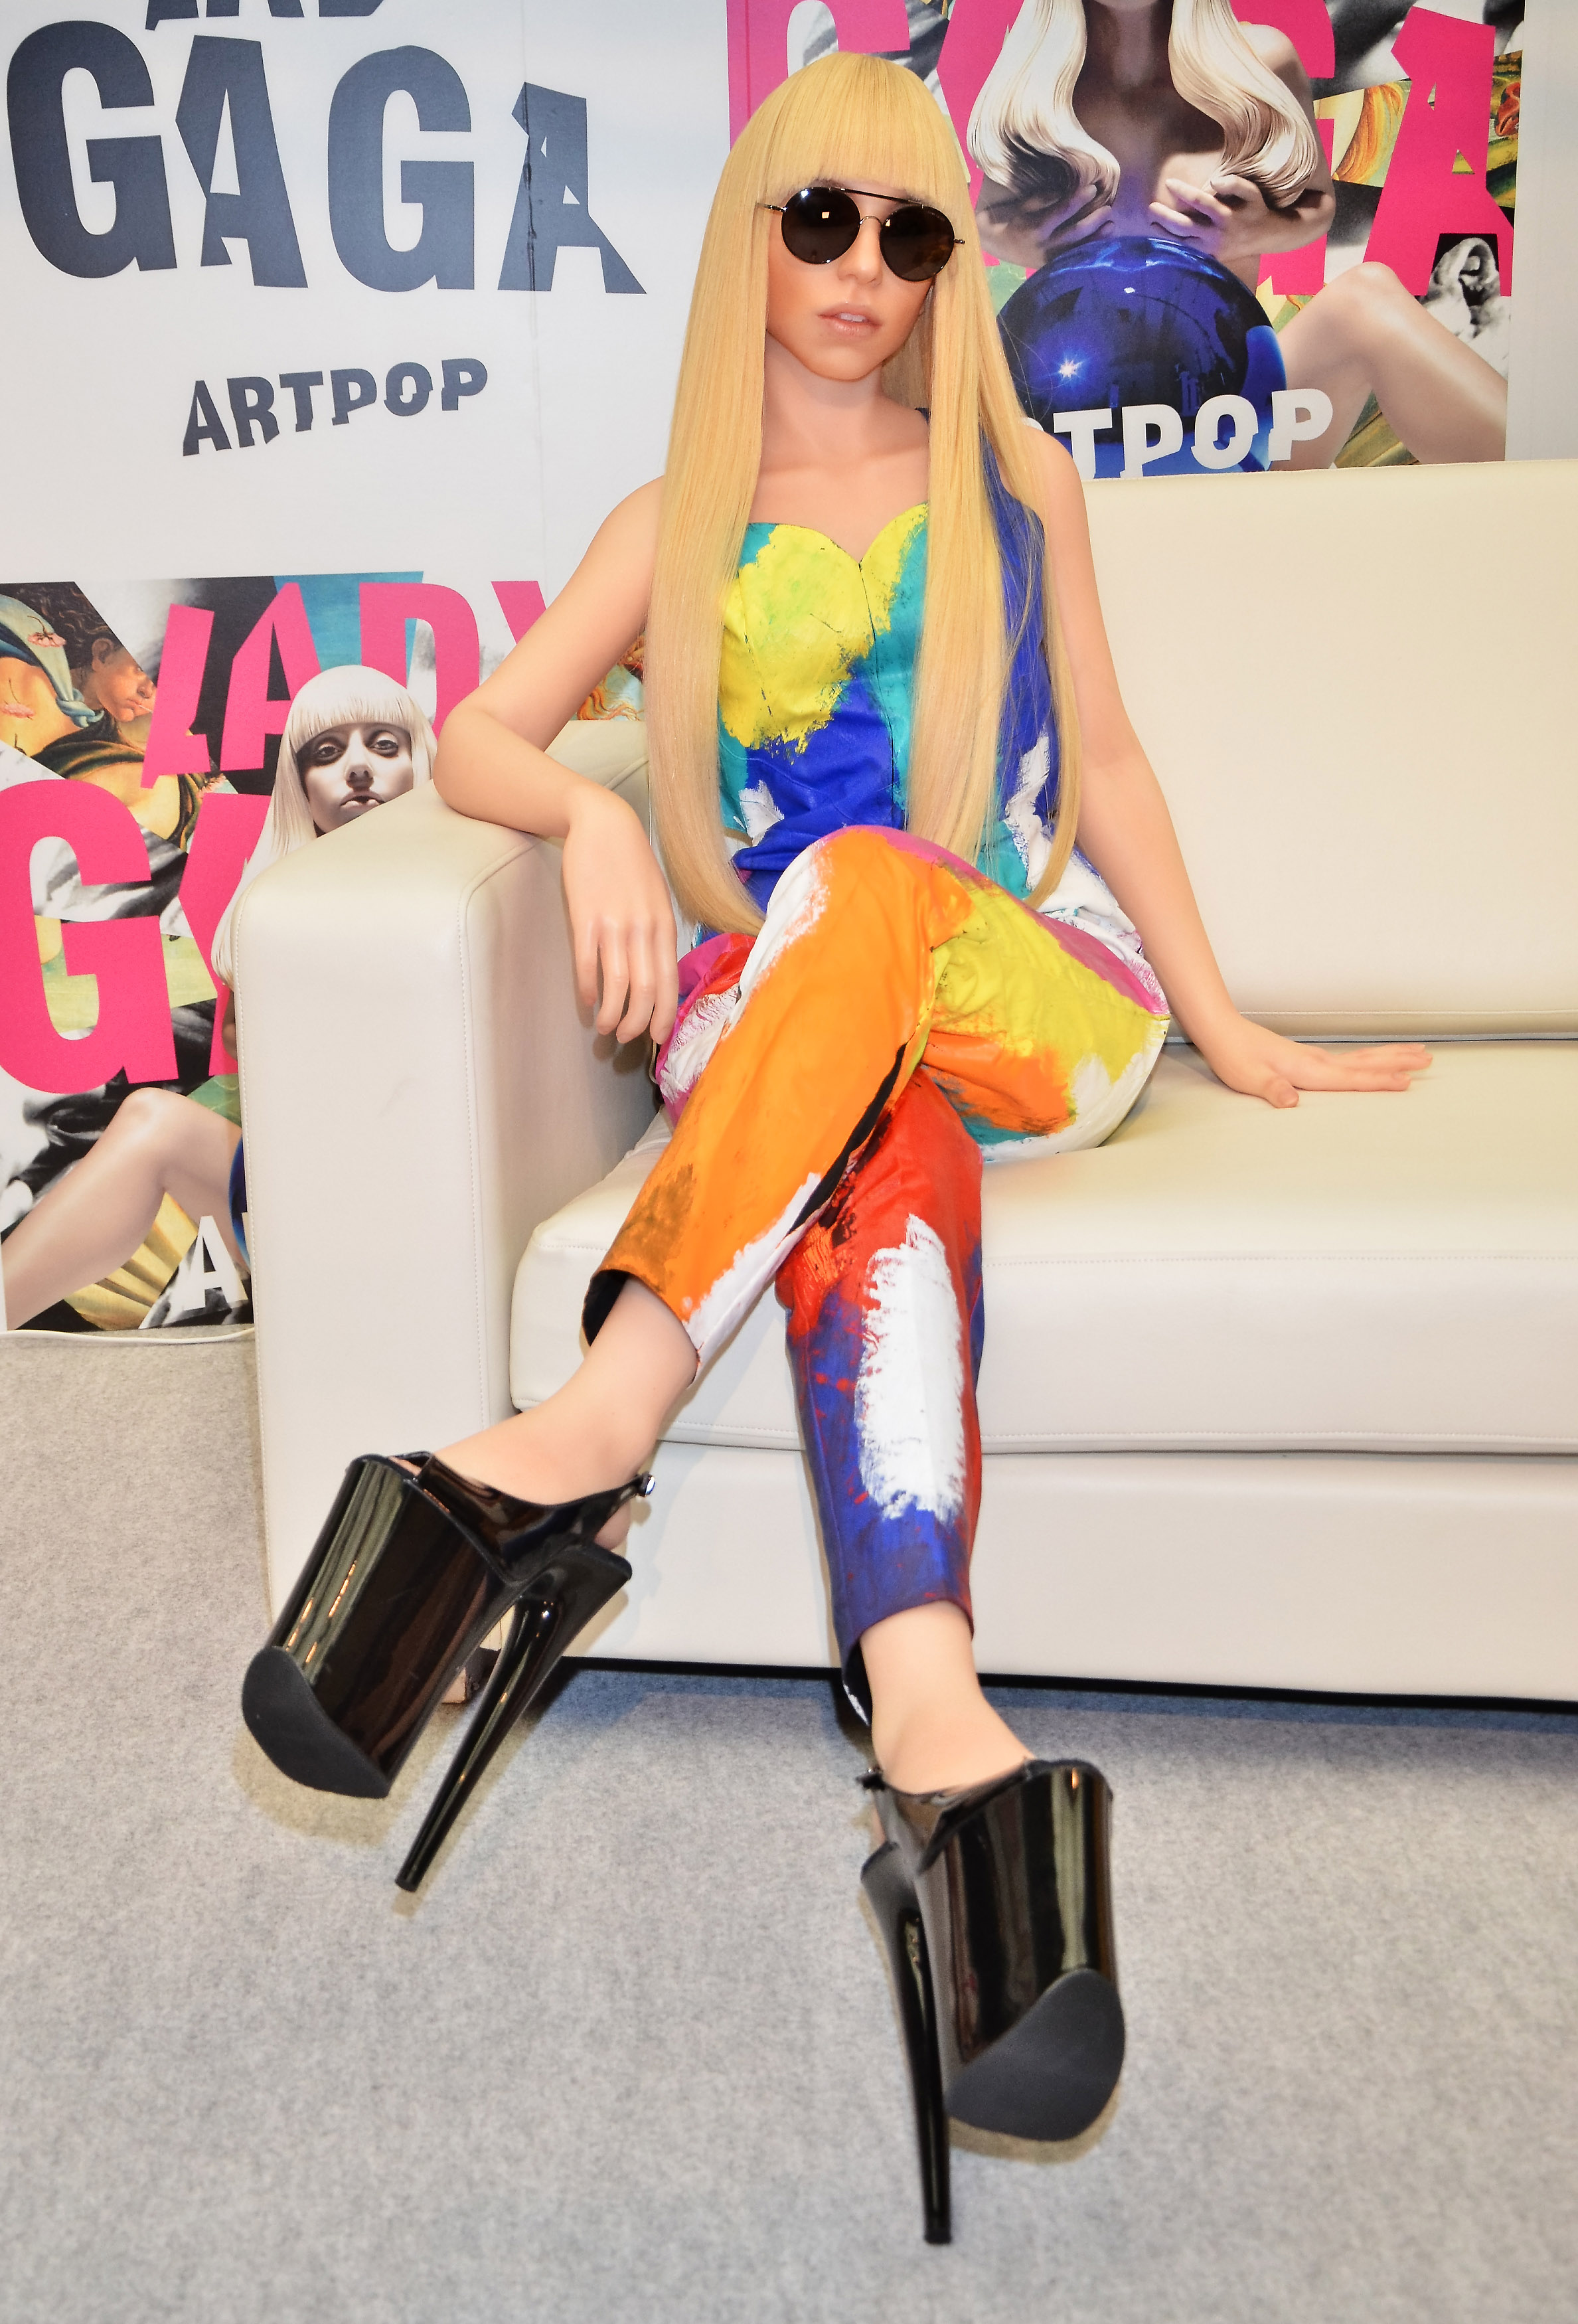 Image #: 25809901    A lifelike ''Gagadoll' sits on a couch as Lady Gaga (not shown) promotes her new album 'ARTPOP' in Tokyo